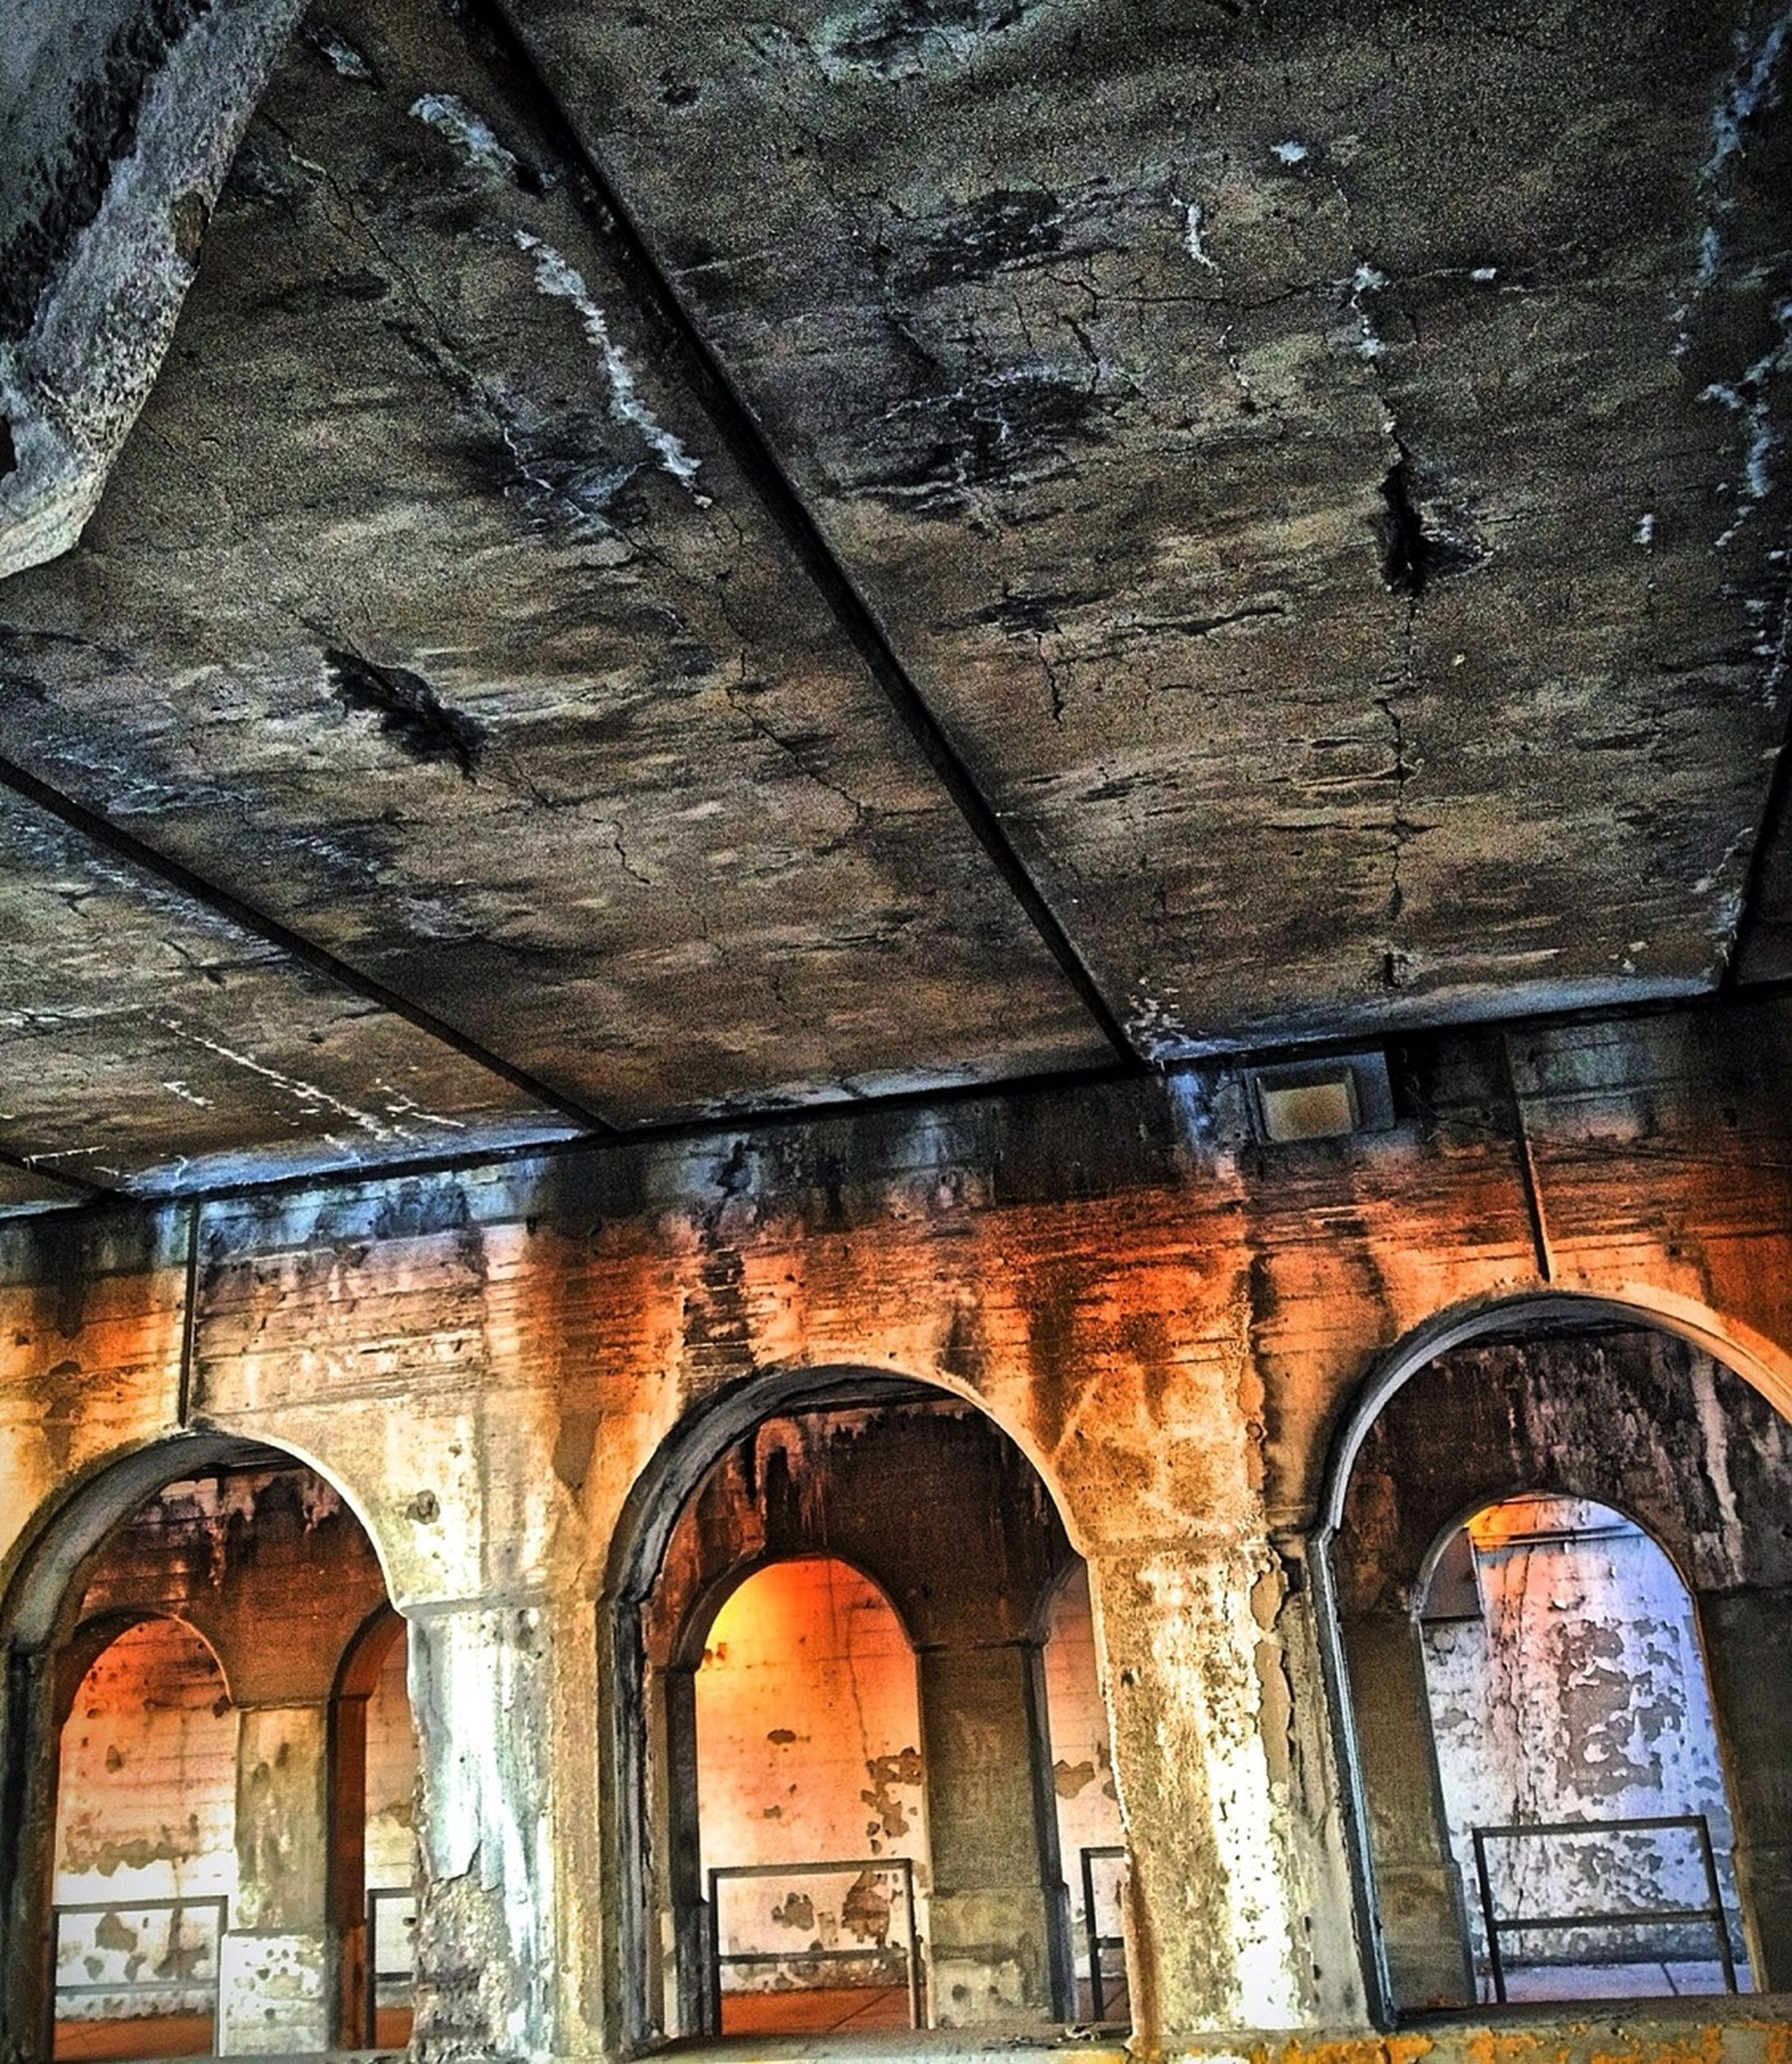 architecture, built structure, building exterior, window, low angle view, old, arch, building, wall - building feature, weathered, abandoned, wall, house, damaged, brick wall, no people, day, indoors, residential structure, deterioration